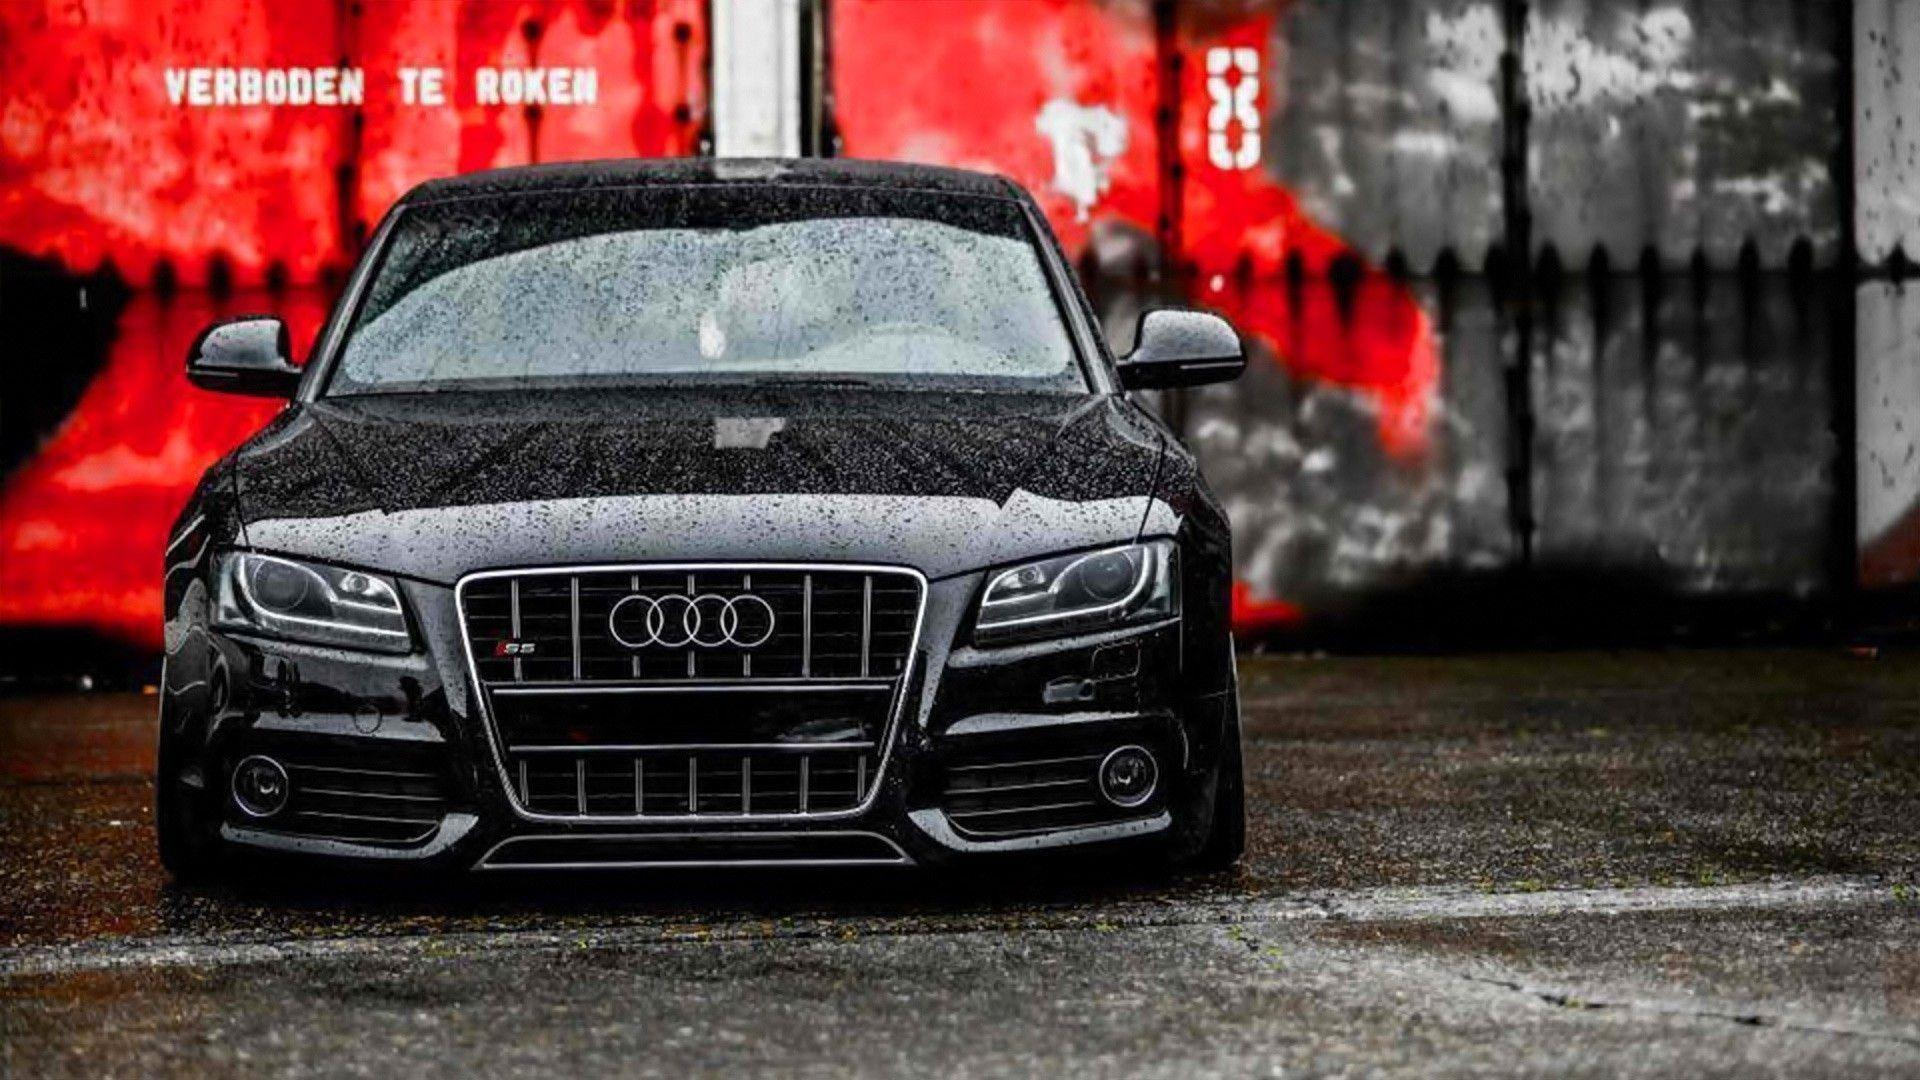 Audi S5 Wallpapers Top Free Audi S5 Backgrounds Wallpaperaccess